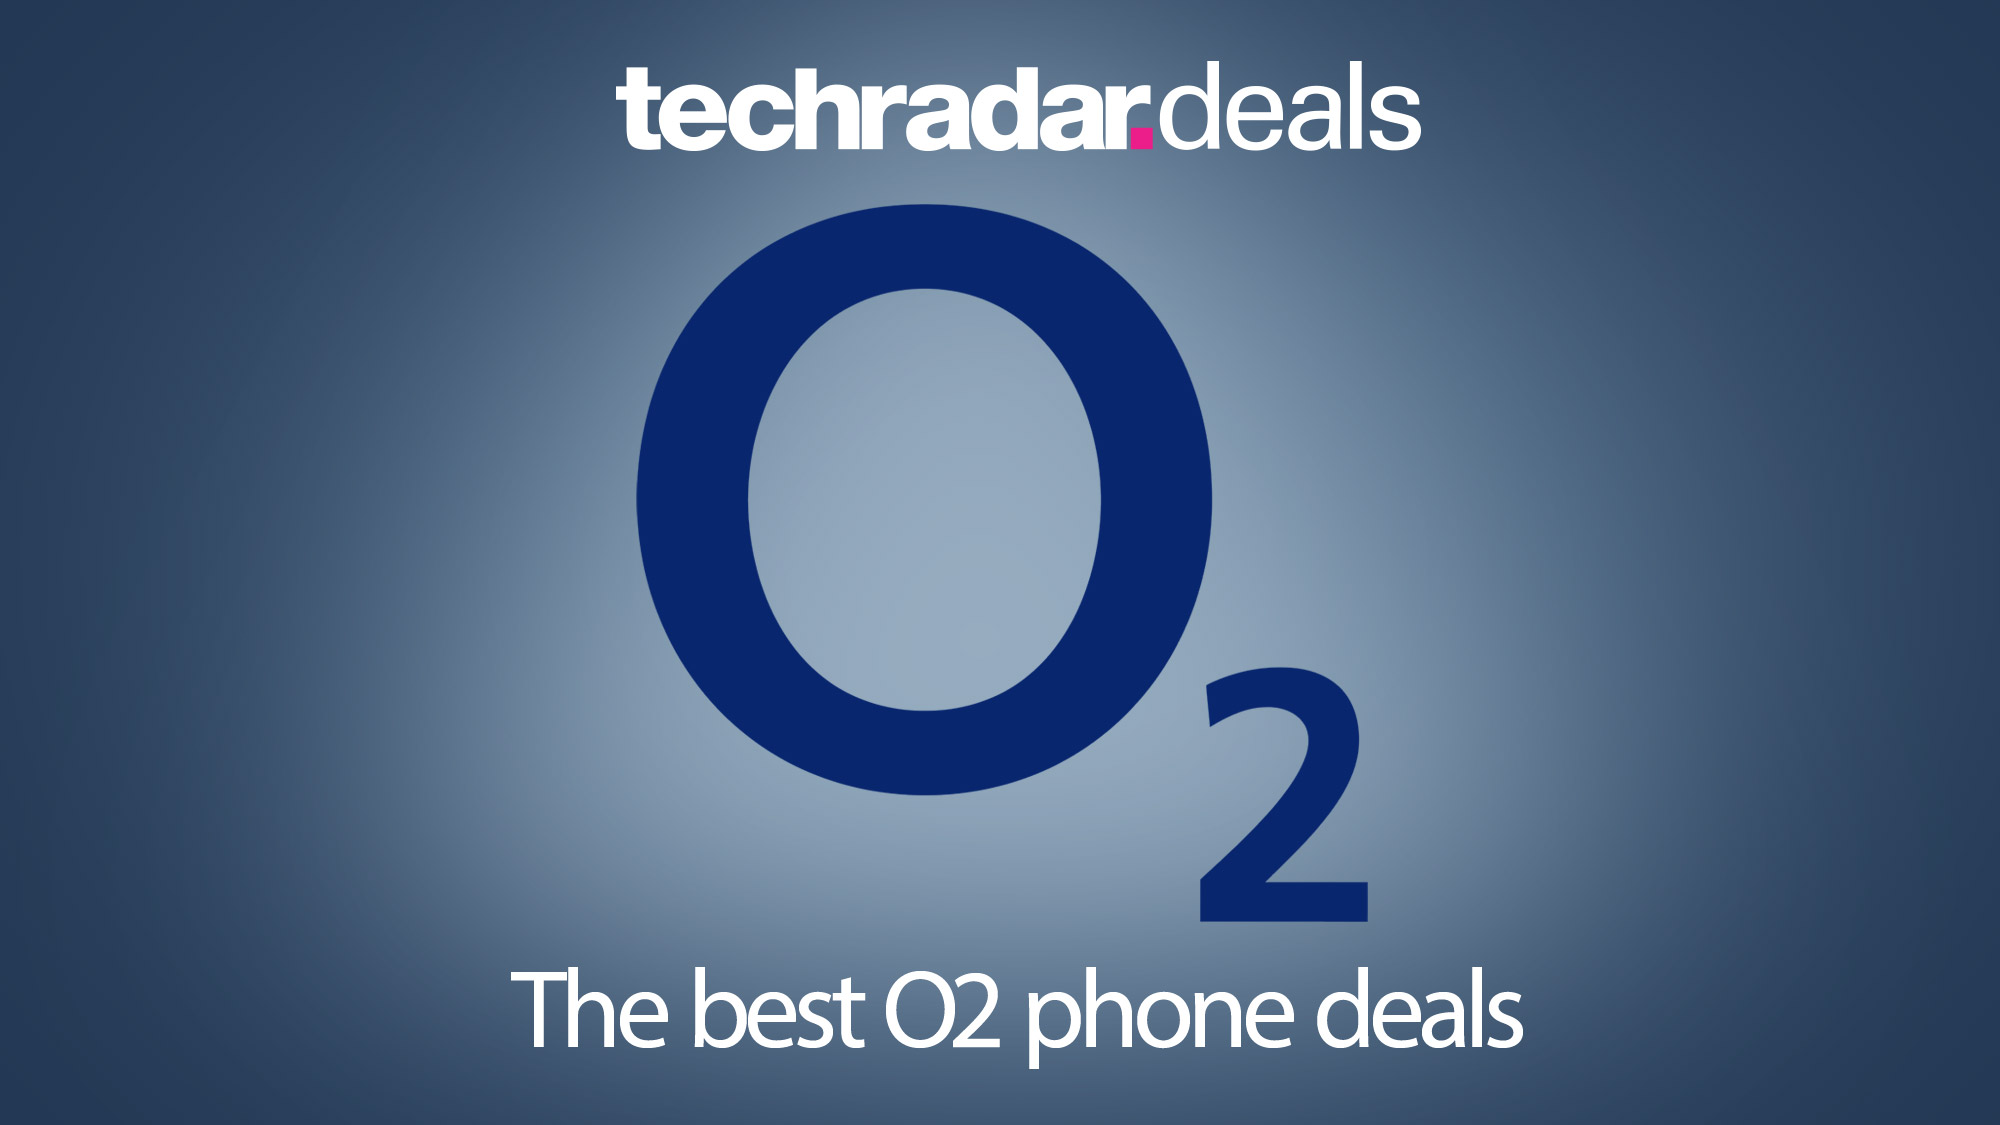 O2 deals and student discount for 12222 mobile phones and SIM-only deals